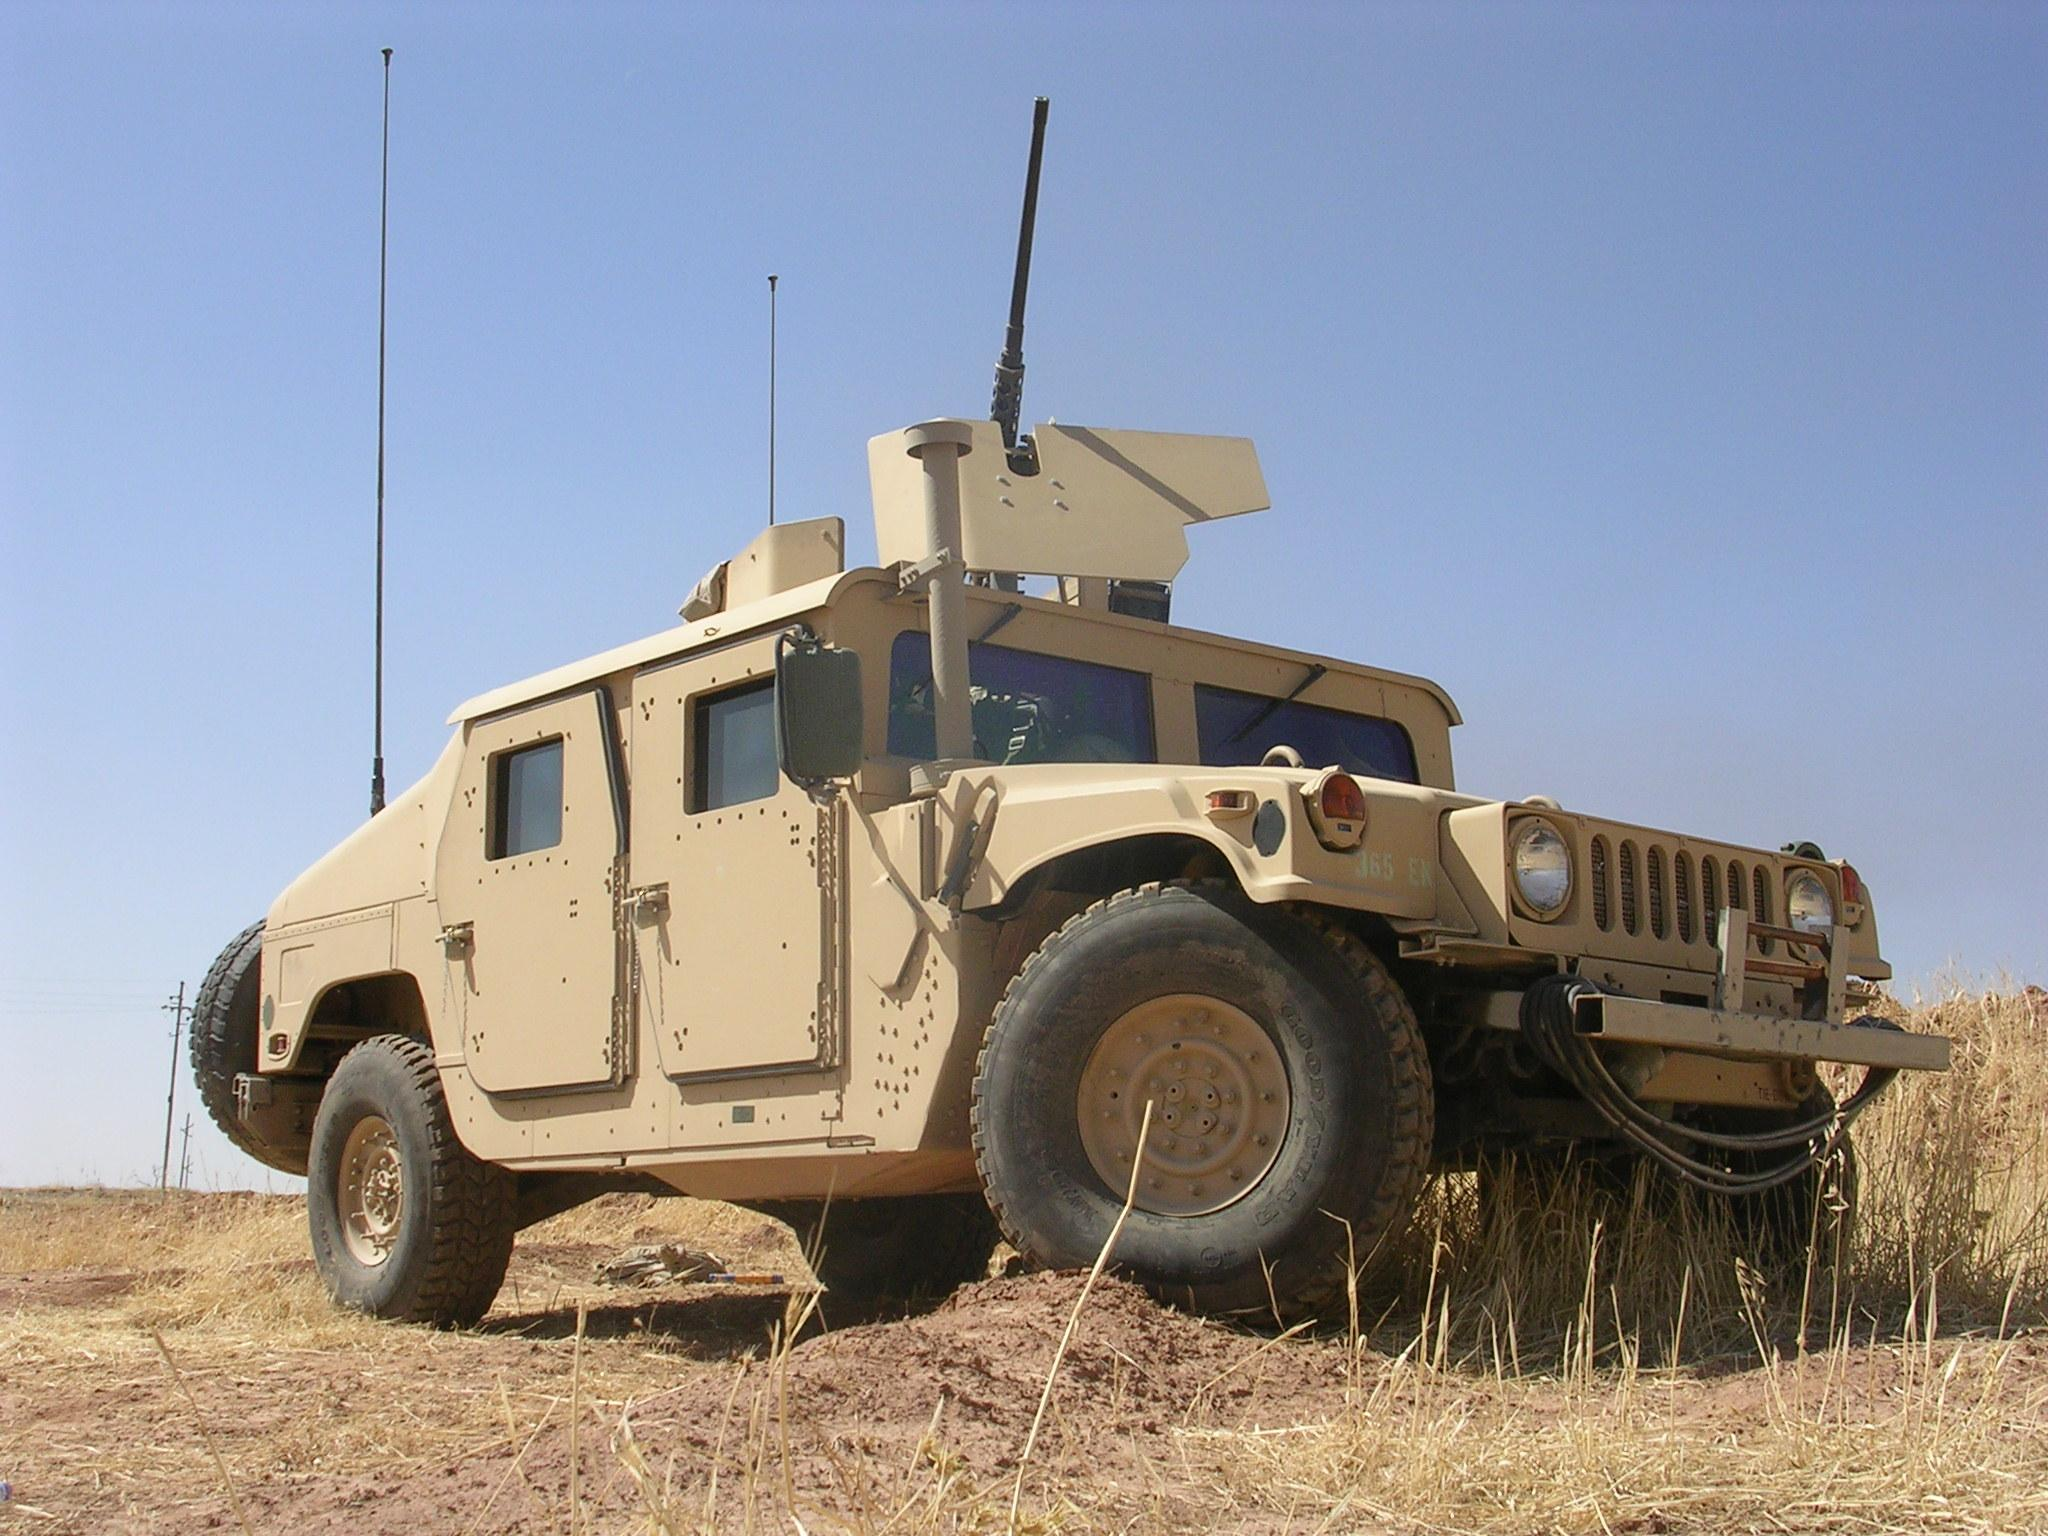 2007 HMMWV M1165 hummer military 4x4 offroad weapon weapons s